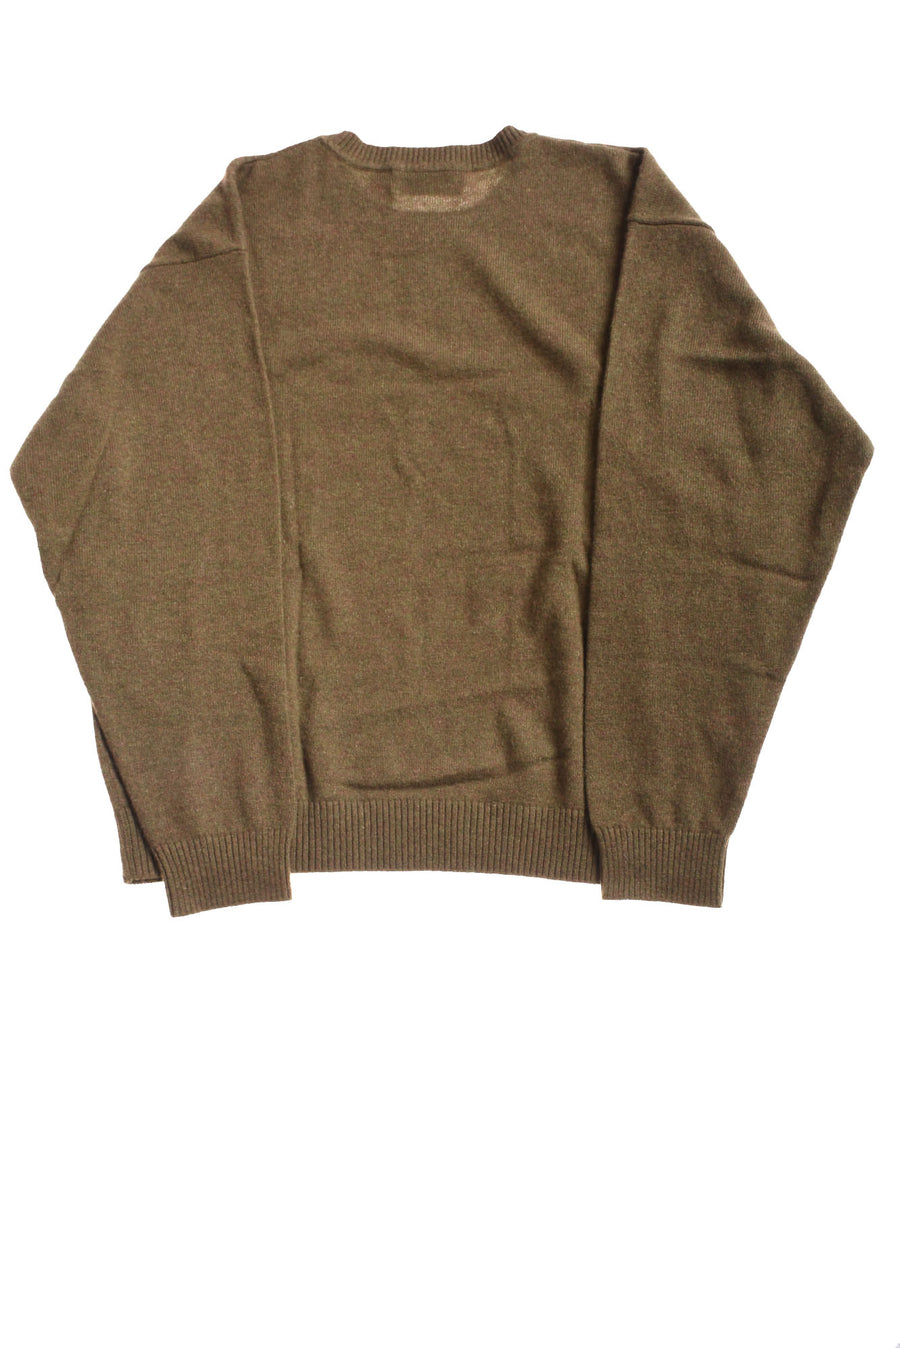 Men's Sweater By Orvis